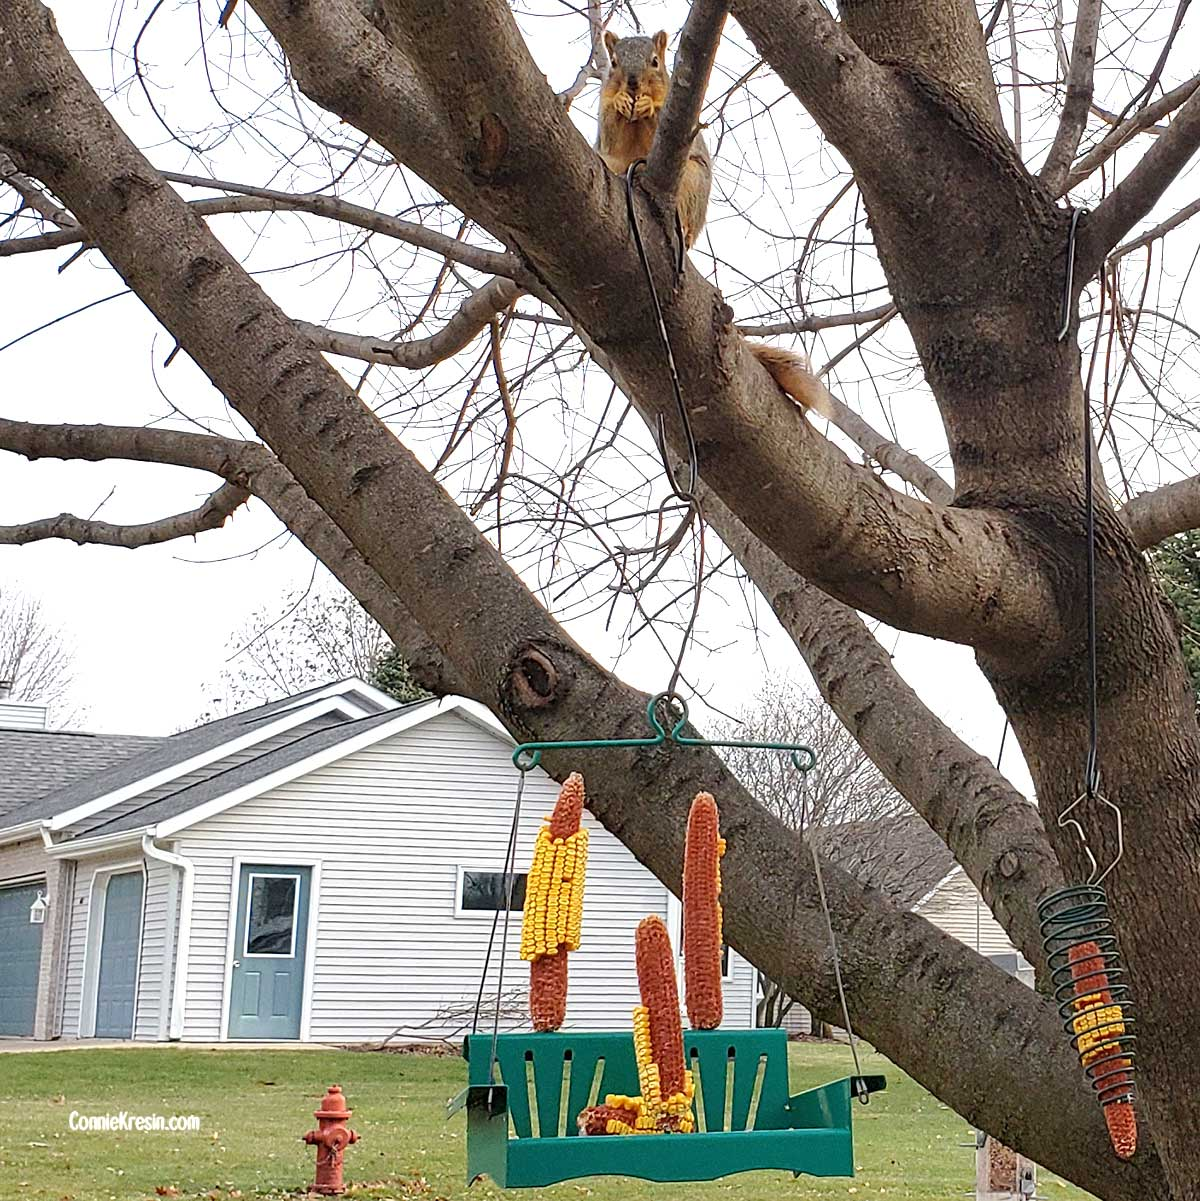 Squirrel eating corn in tree